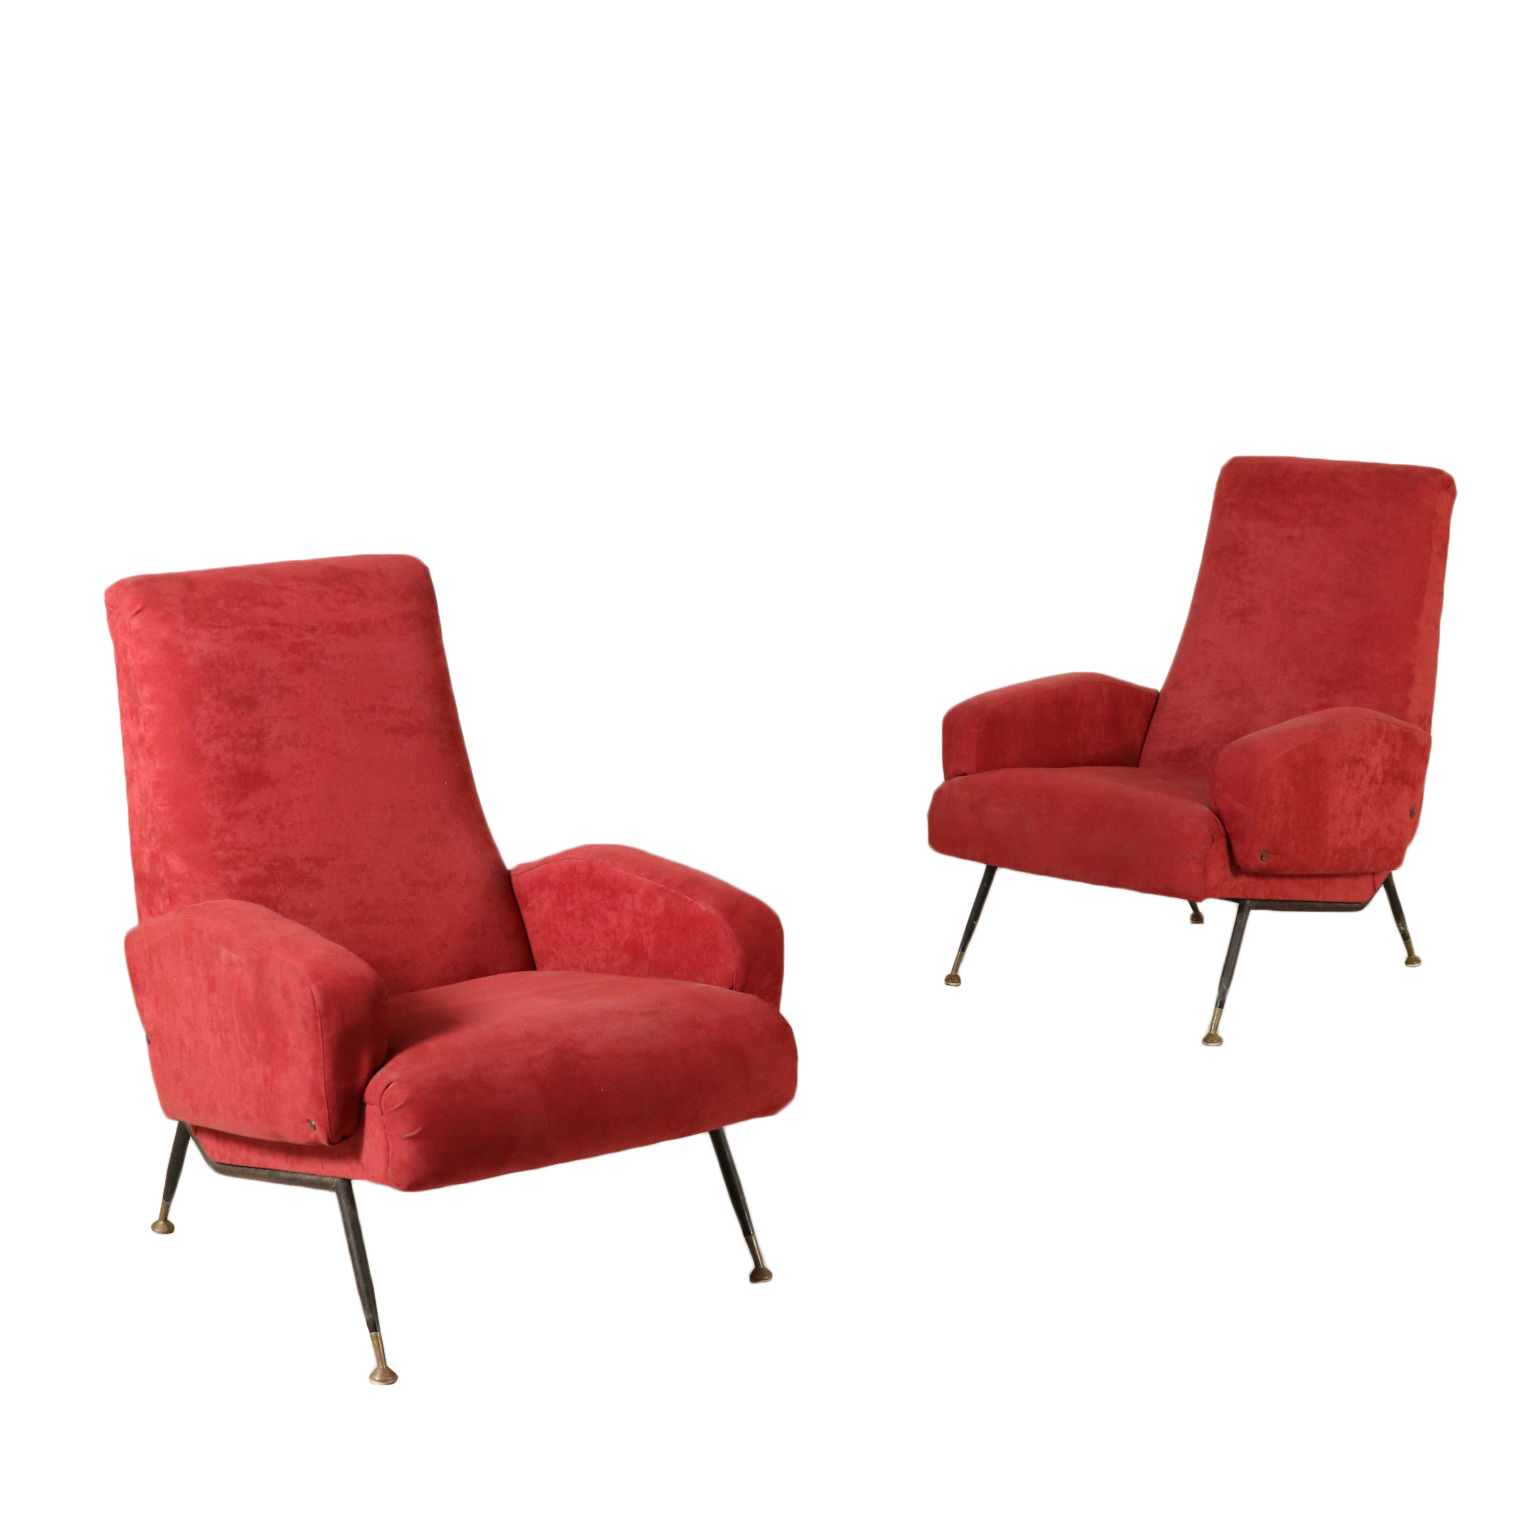 Pair of armchairs foam padding fabric vintage italy 1950s 1960s armchairs modern design dimanoinmano it